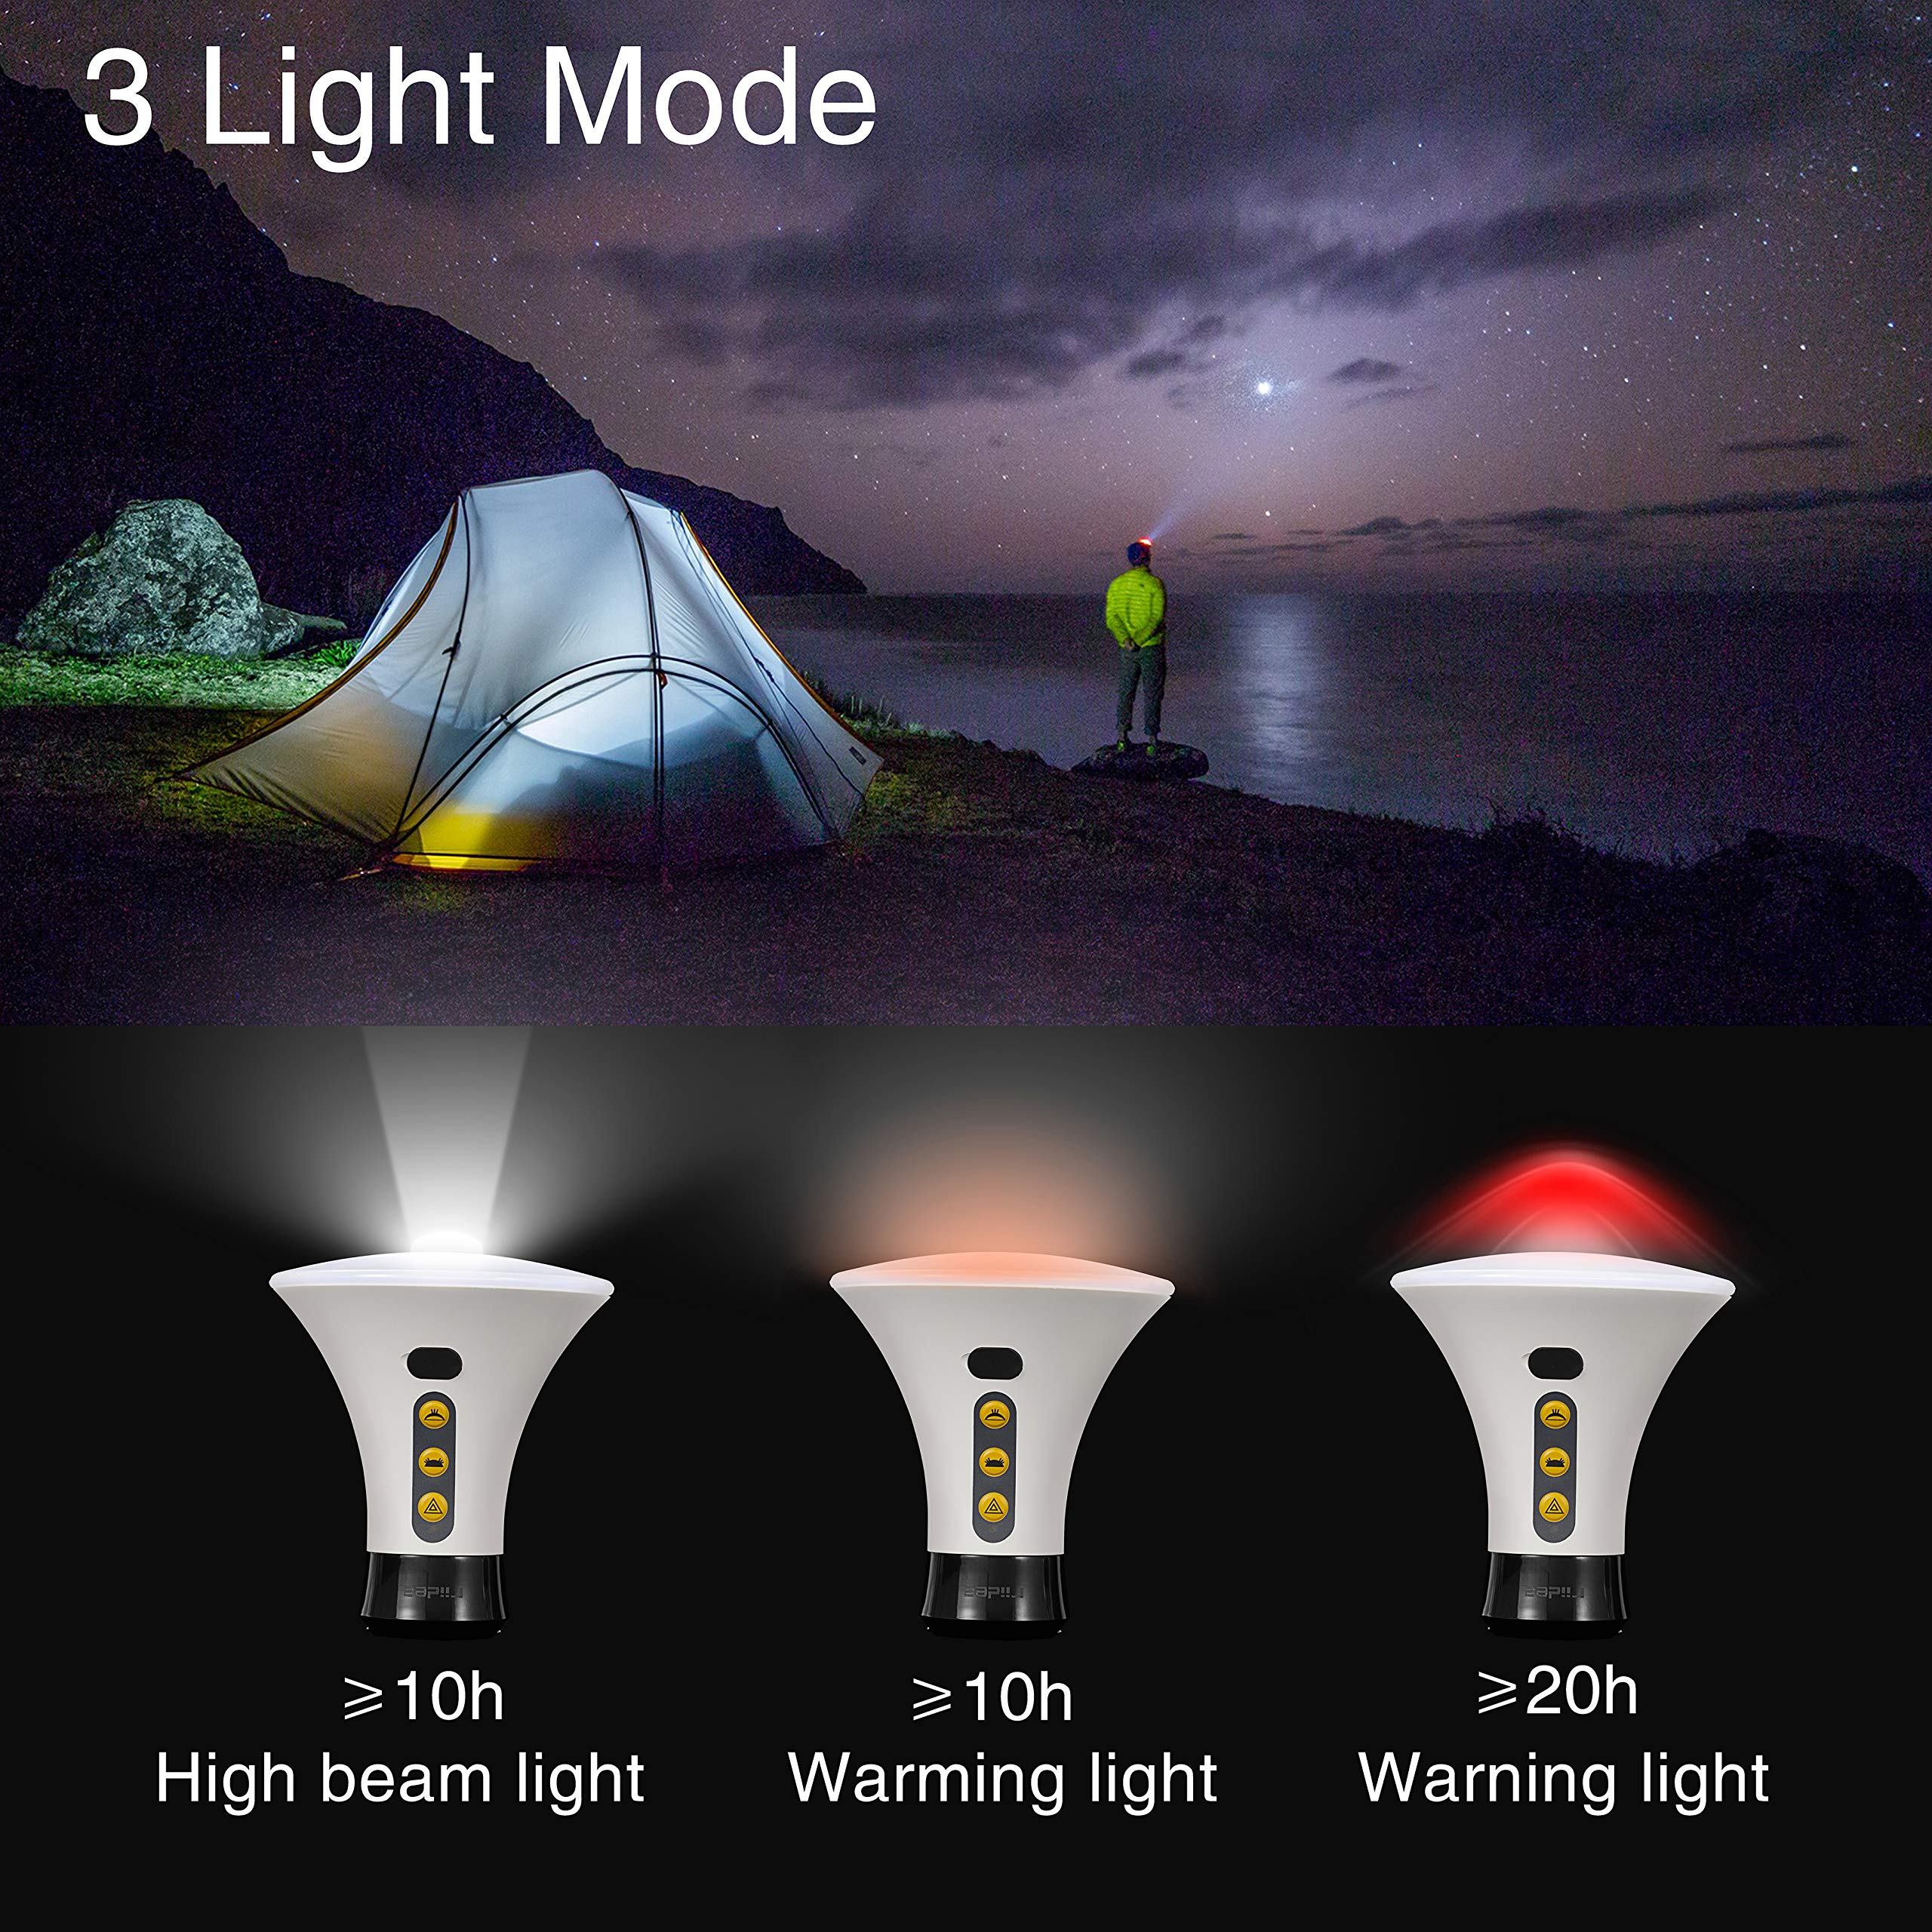 Camping Light,USB Rechargeable Built-in Battery Camping Lantern,Extra Long Lighting Time, Multi-function Emergency Lamp,Portable Tent Light,Waterproof and Durable Design,Three Lighting Modes,Protect Eyesight Lamp.